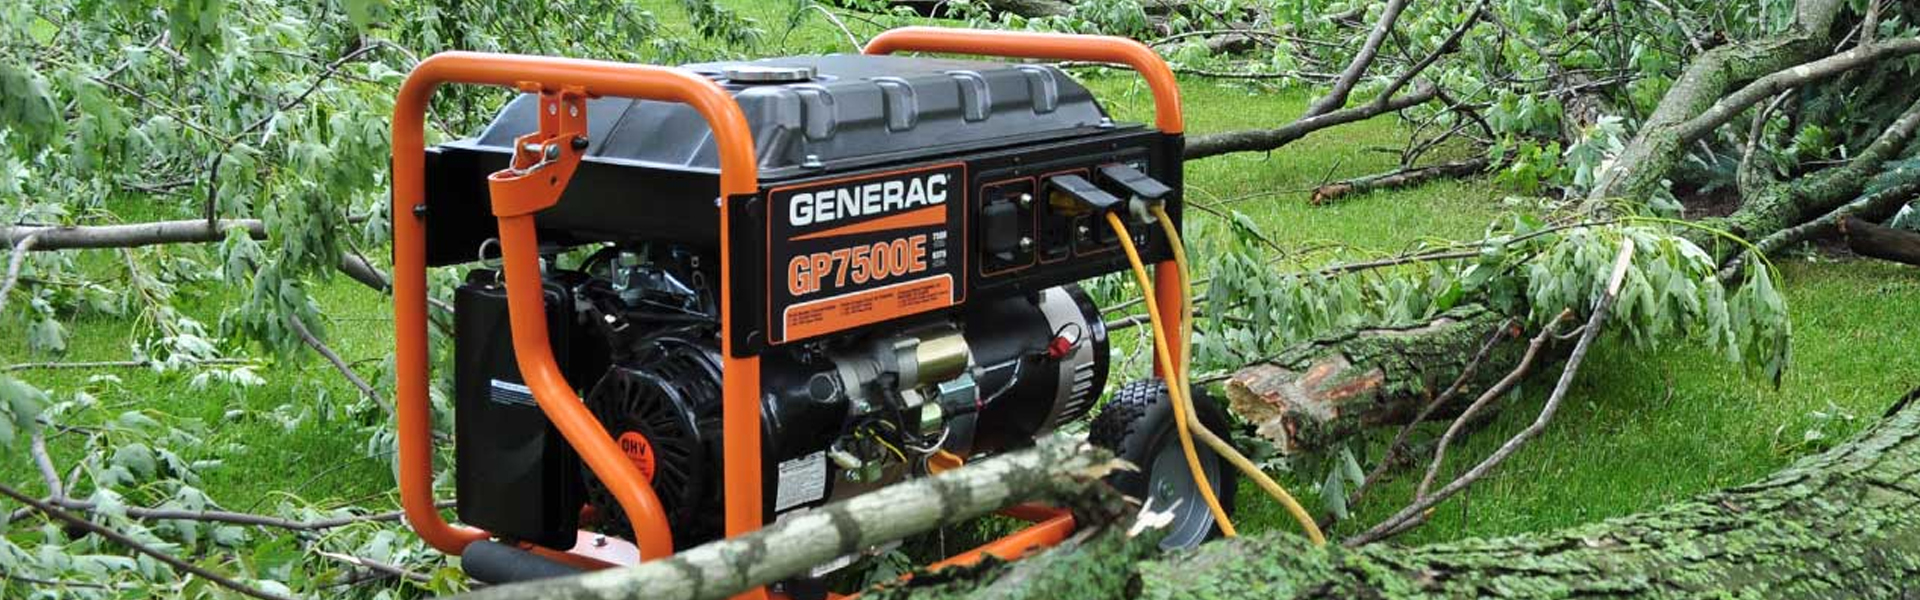 Out of power? Use generators safely - ICC